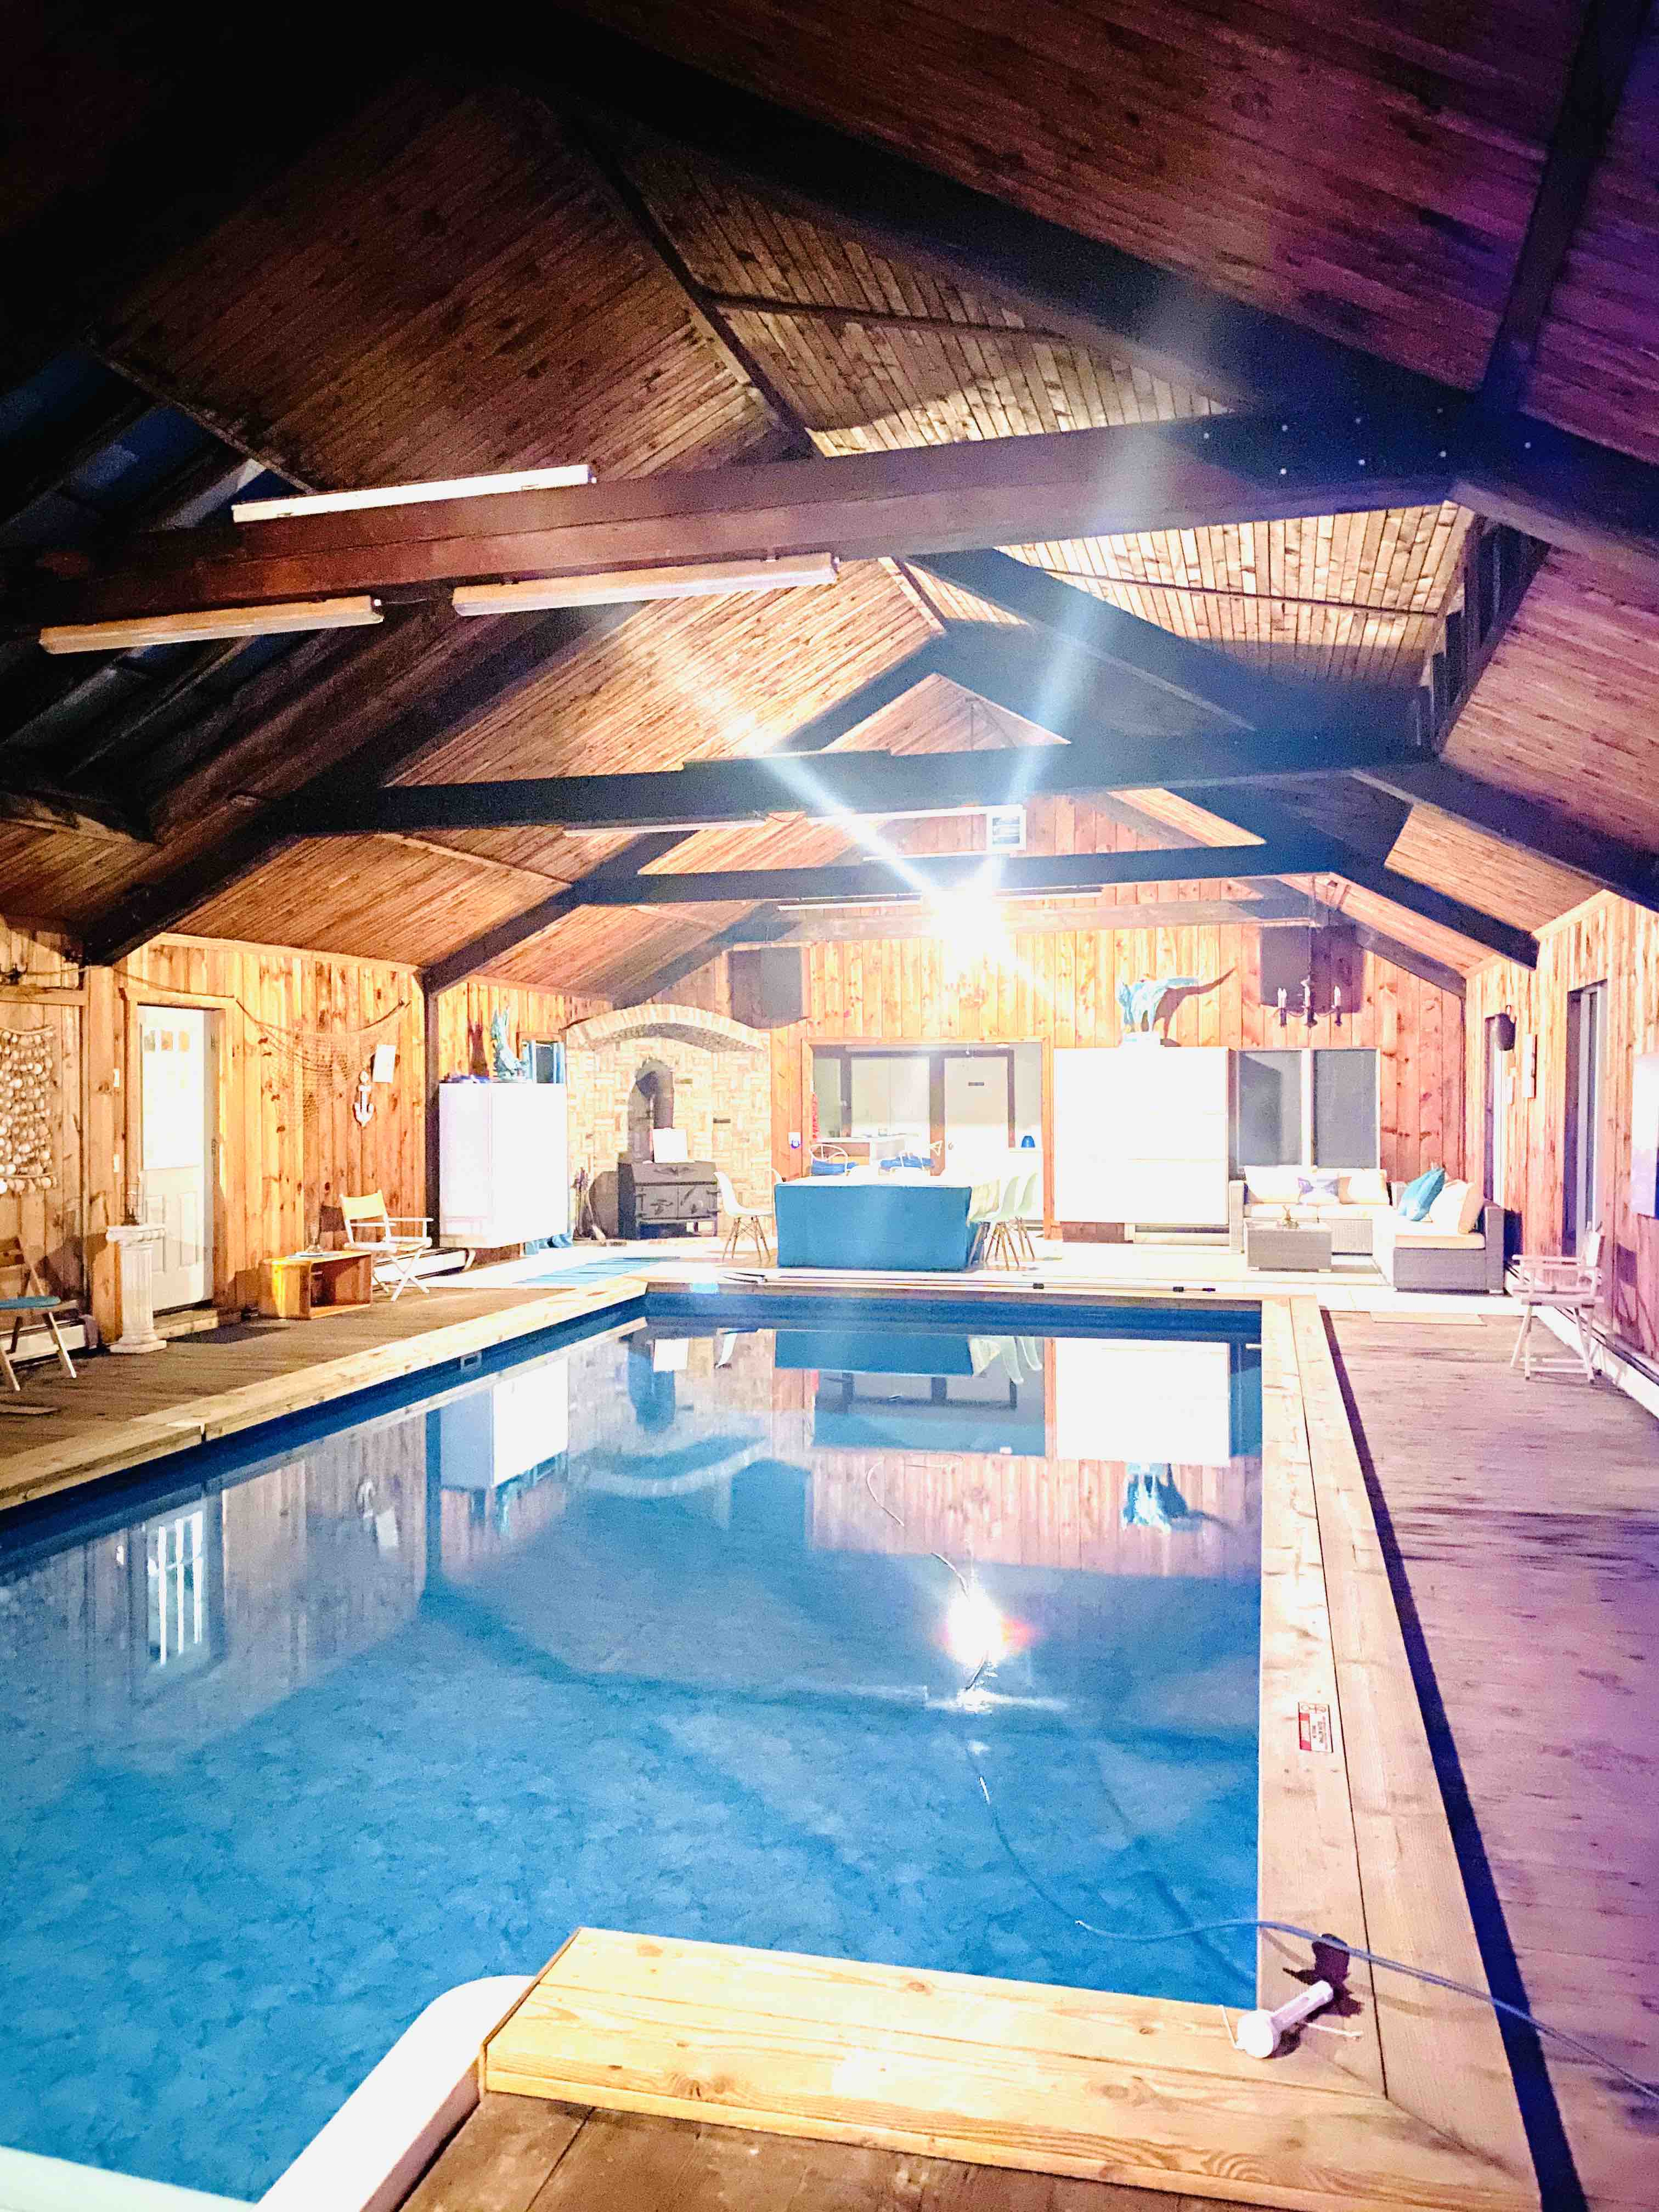 Perfect For Family Friends Indoor Pool Much More Houses For Rent In Wurtsboro New York United States